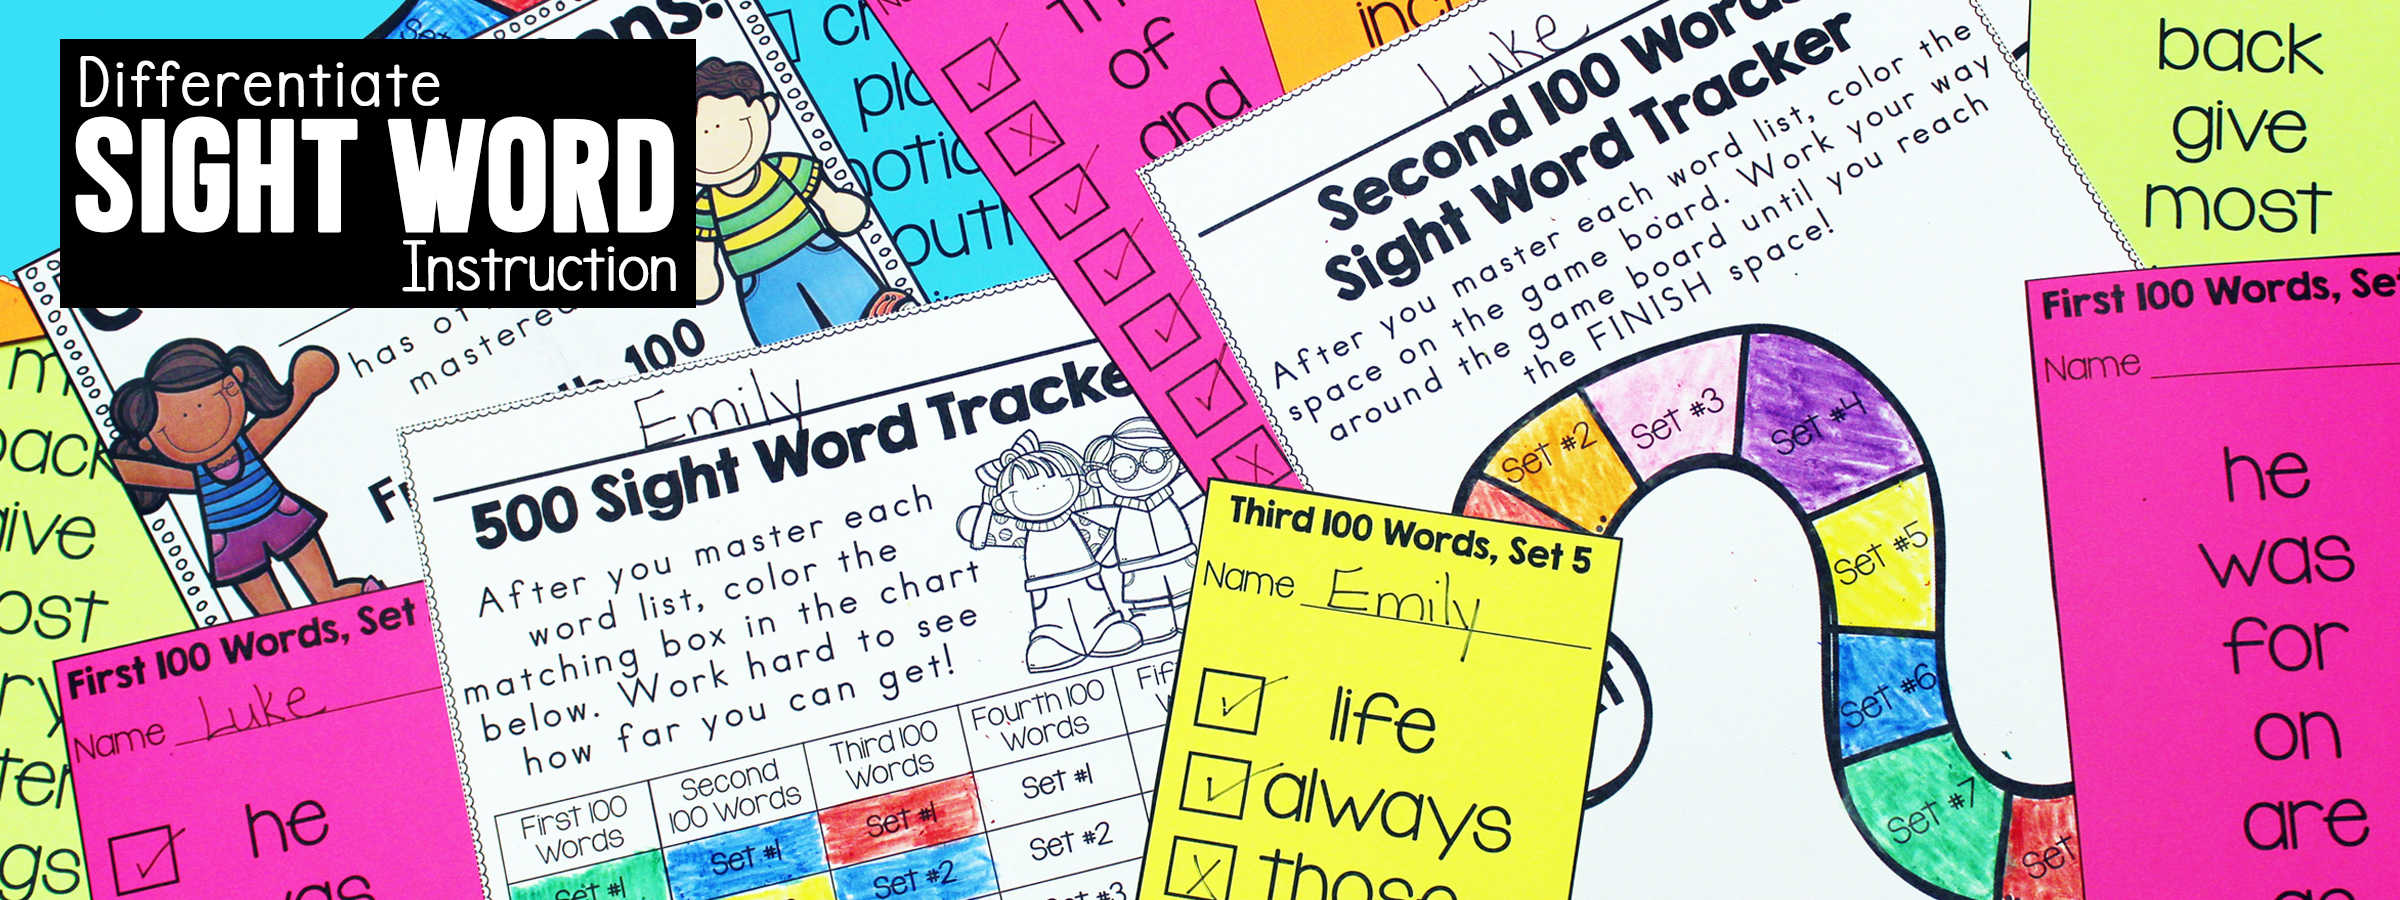 Differentiate Sight Word Instruction